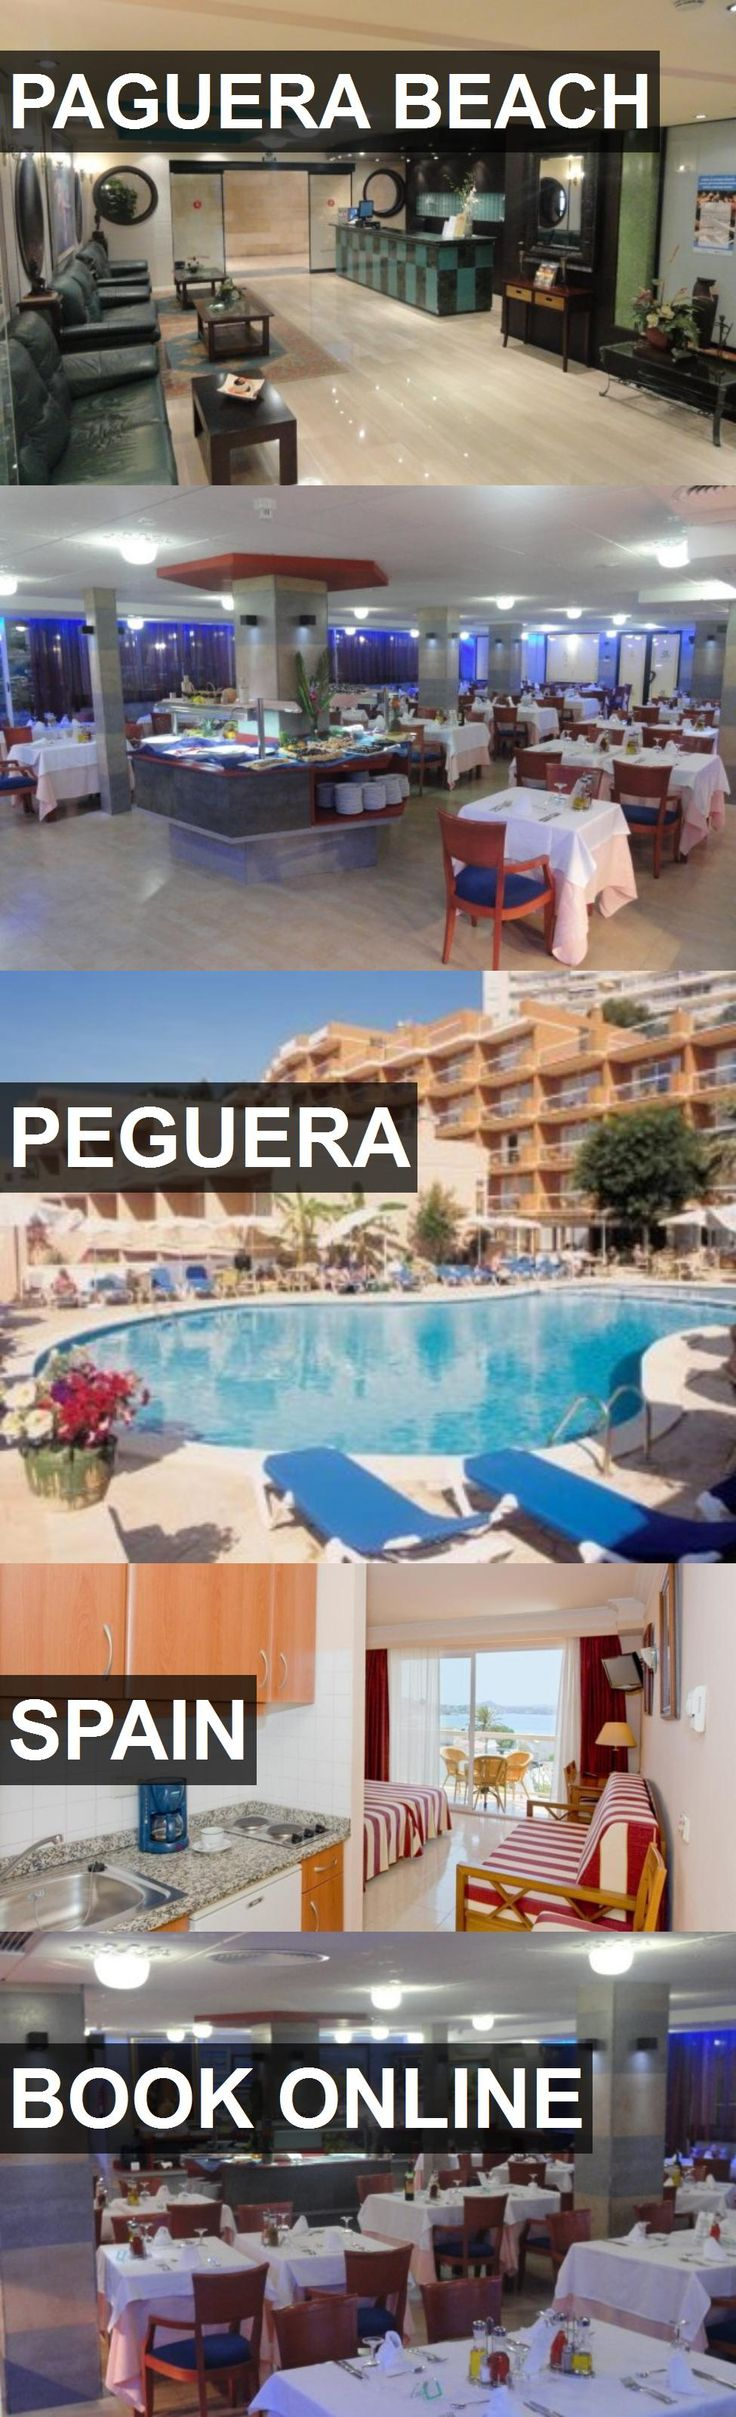 Hotel PAGUERA BEACH in Peguera, Spain. For more information, photos, reviews and best prices please follow the link. #Spain #Peguera #travel #vacation #hotel